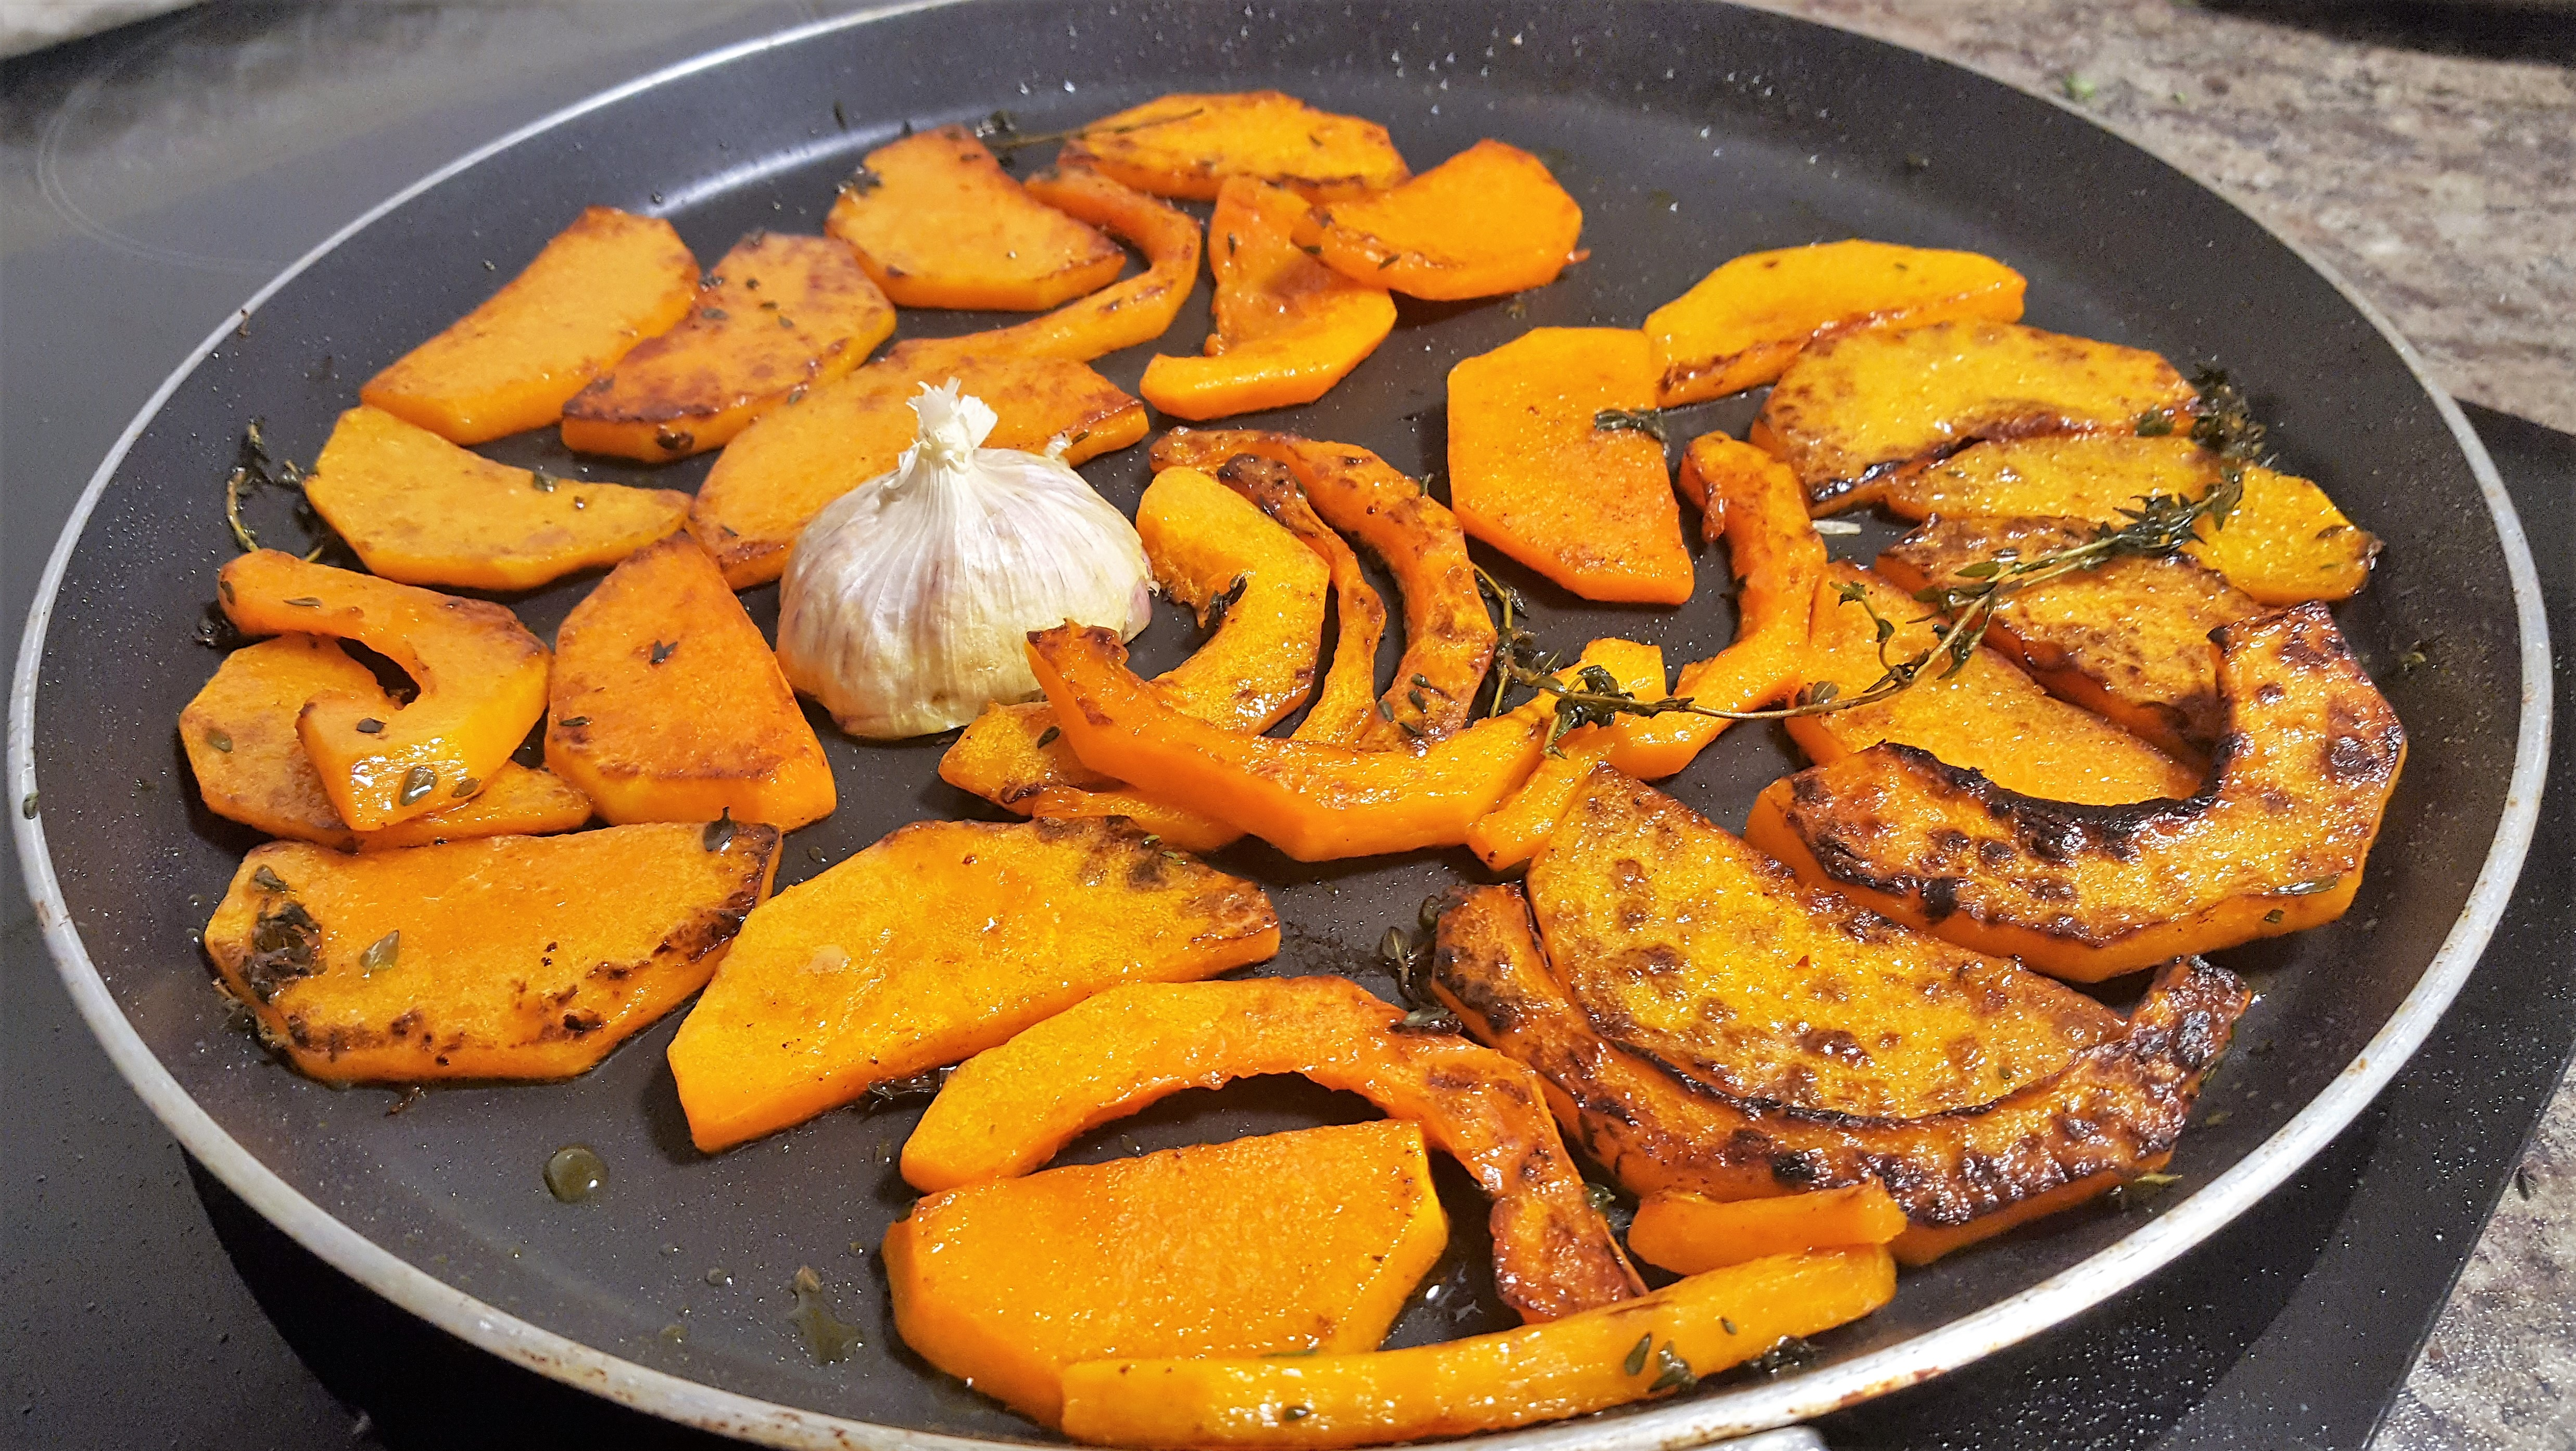 How to pan roast butternut squash Vegetarian Snacks dontask4salt